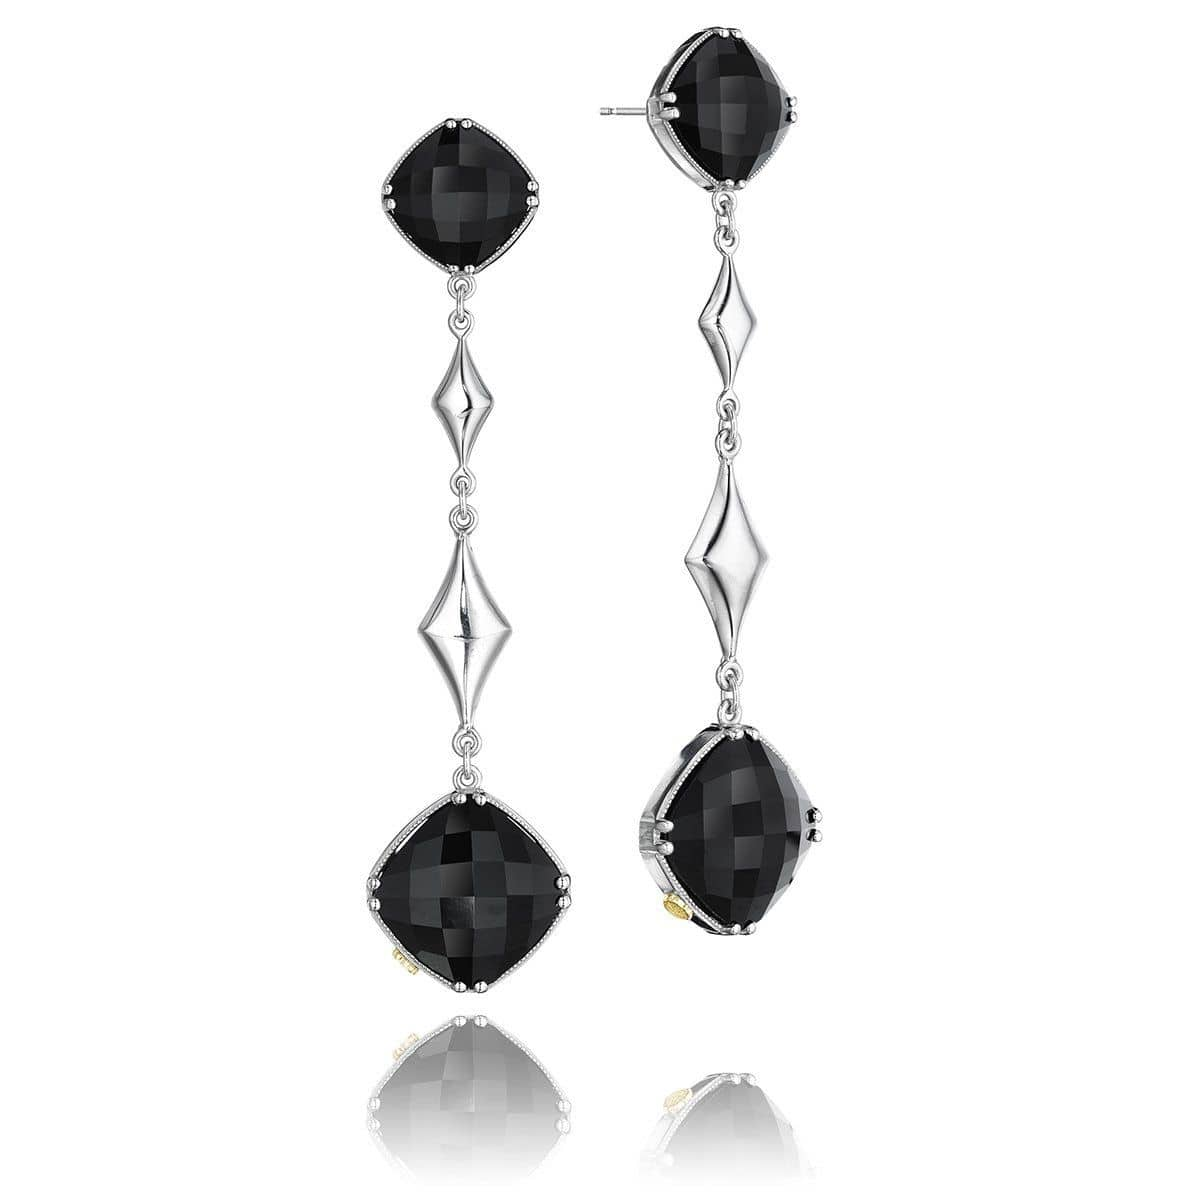 Silver Black Onyx Earrings - SE17019-Tacori-Renee Taylor Gallery